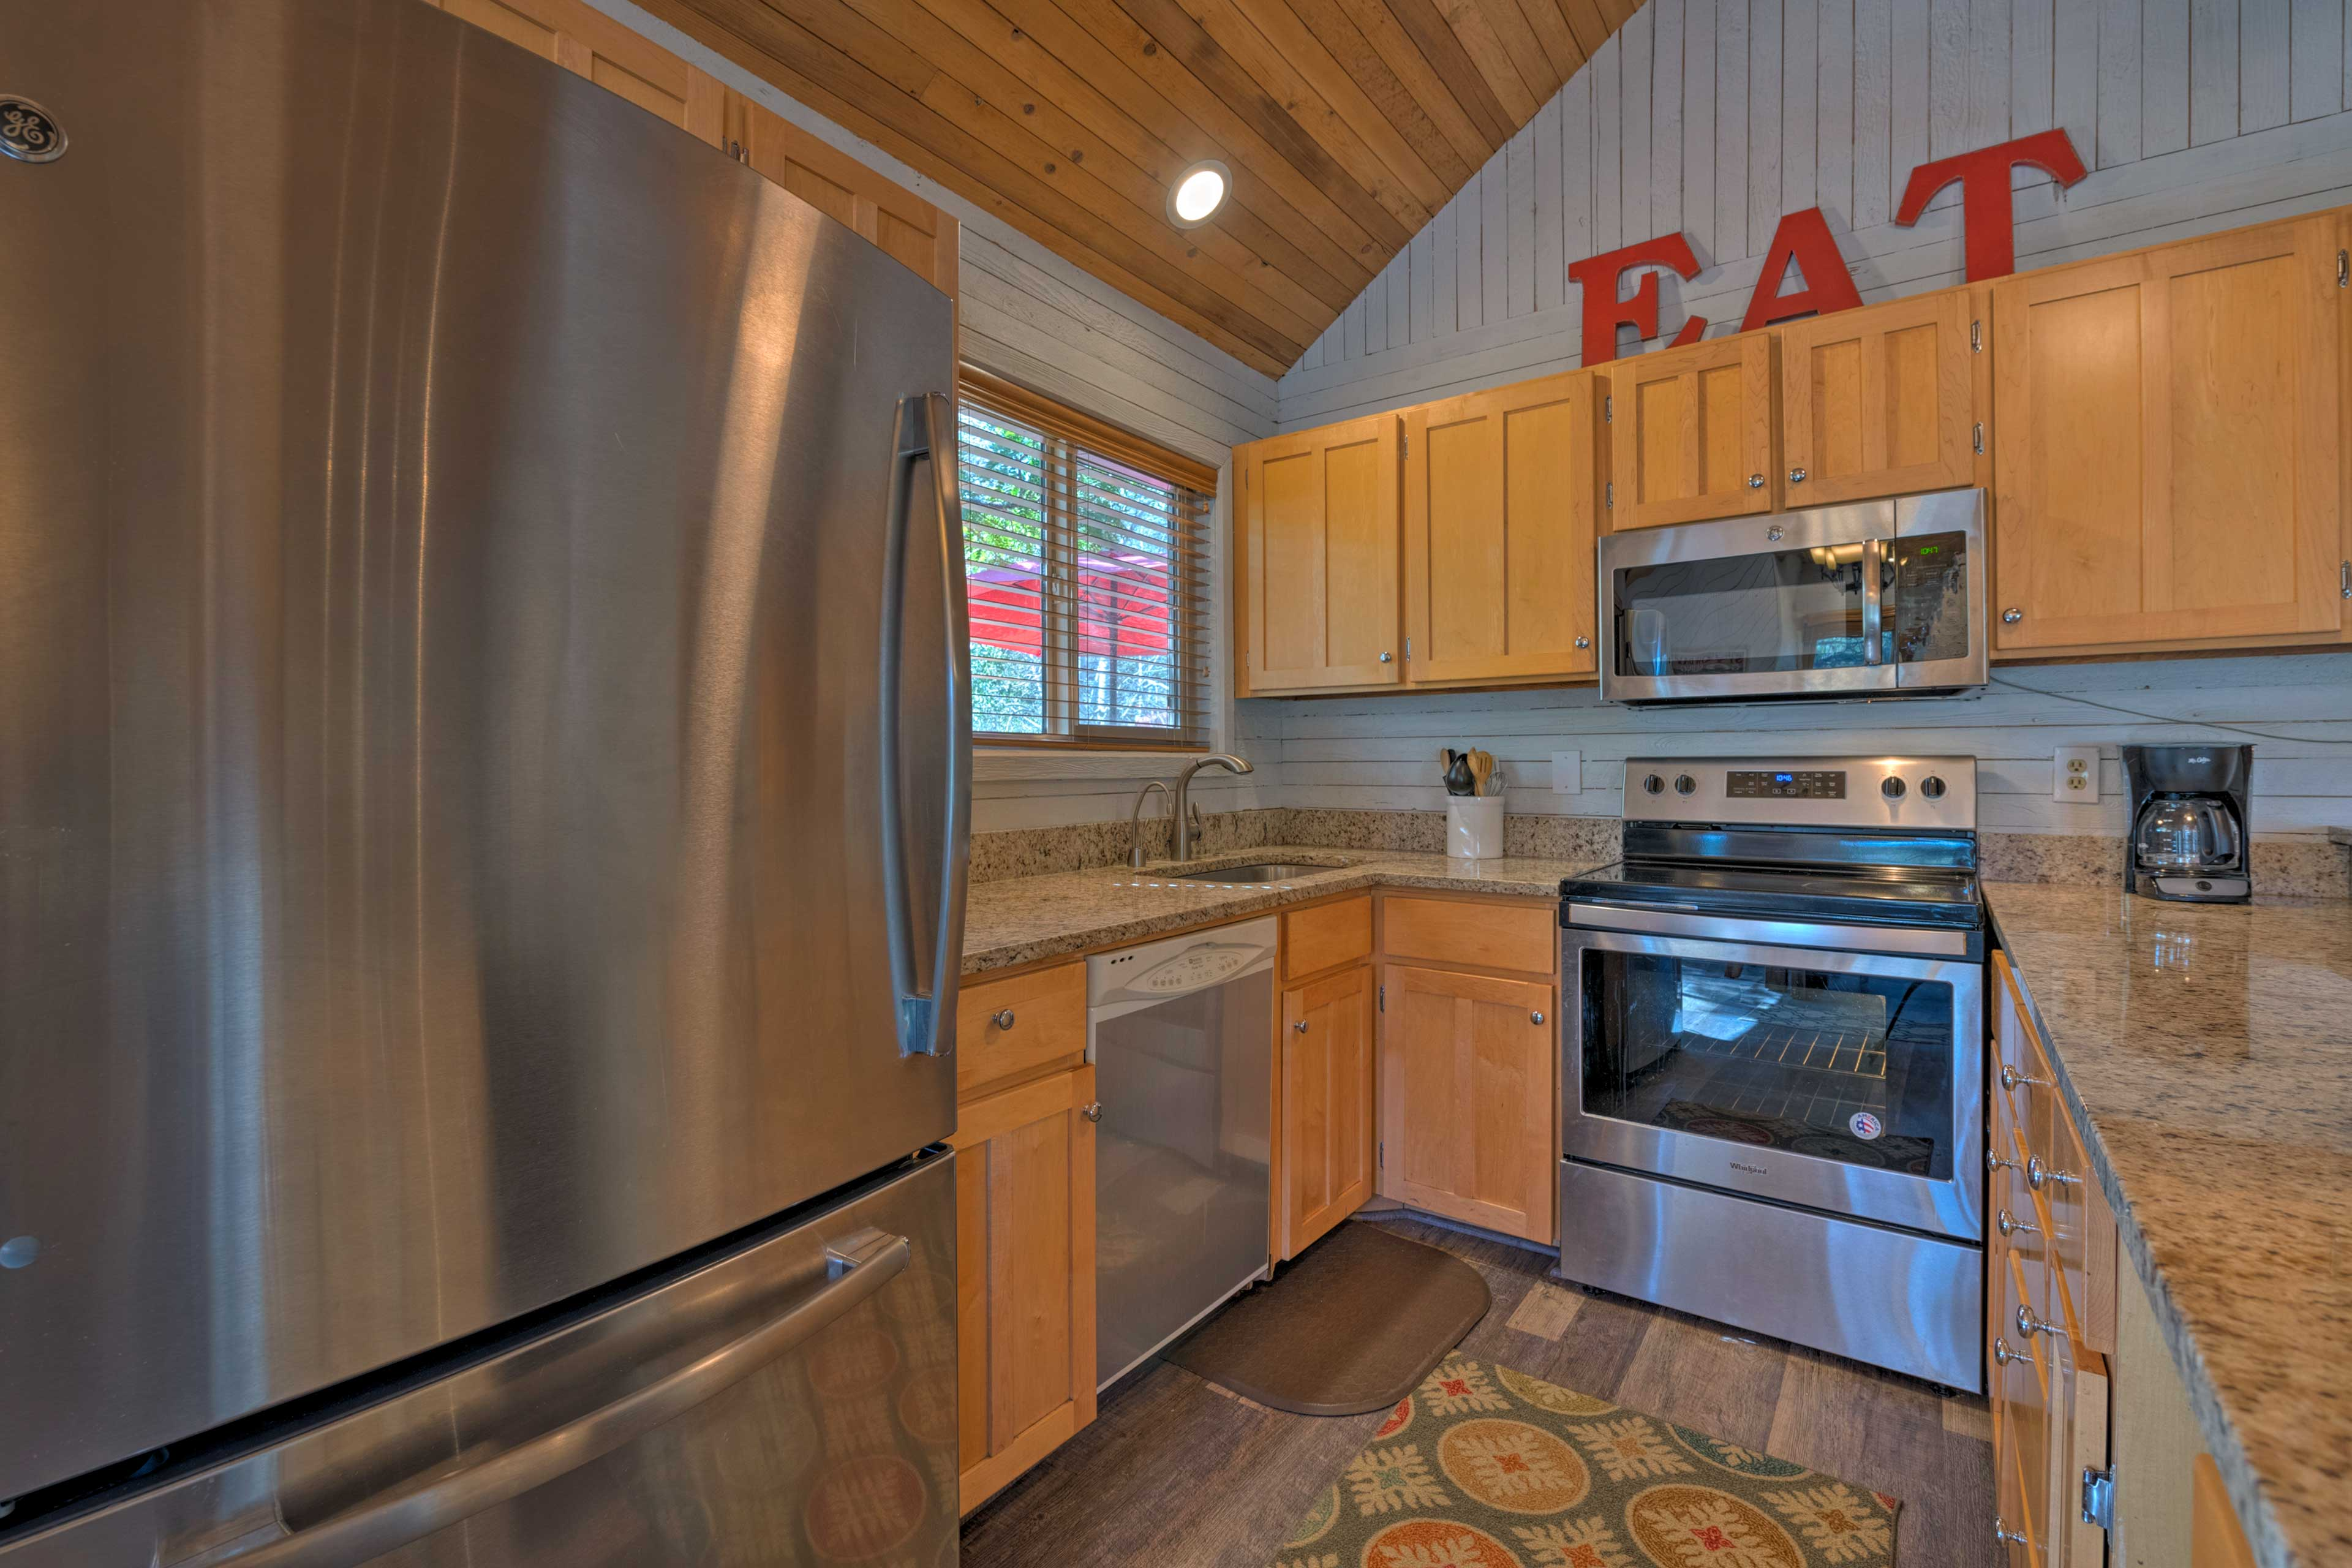 Prepare your favorite meals in the fully equipped stainless steel kitchen.